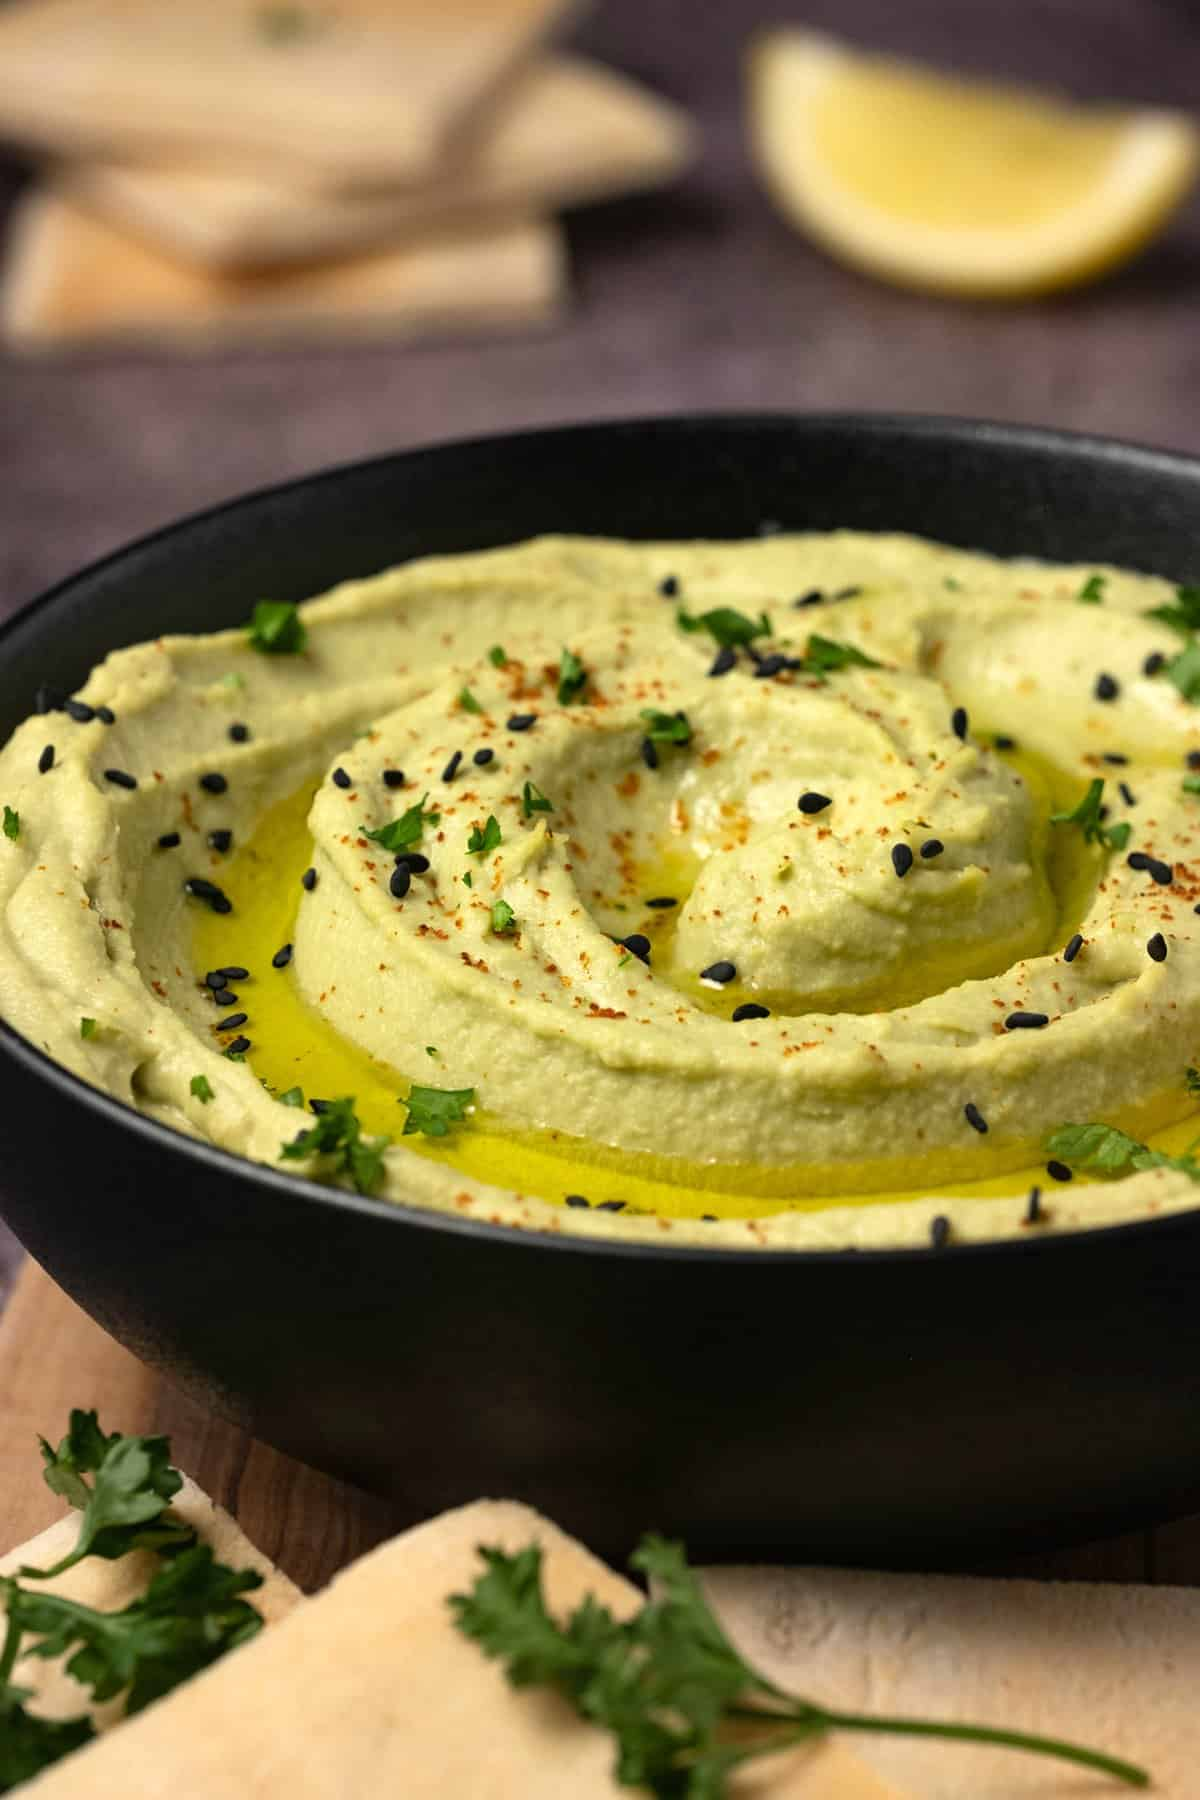 Black bowl of avocado hummus.